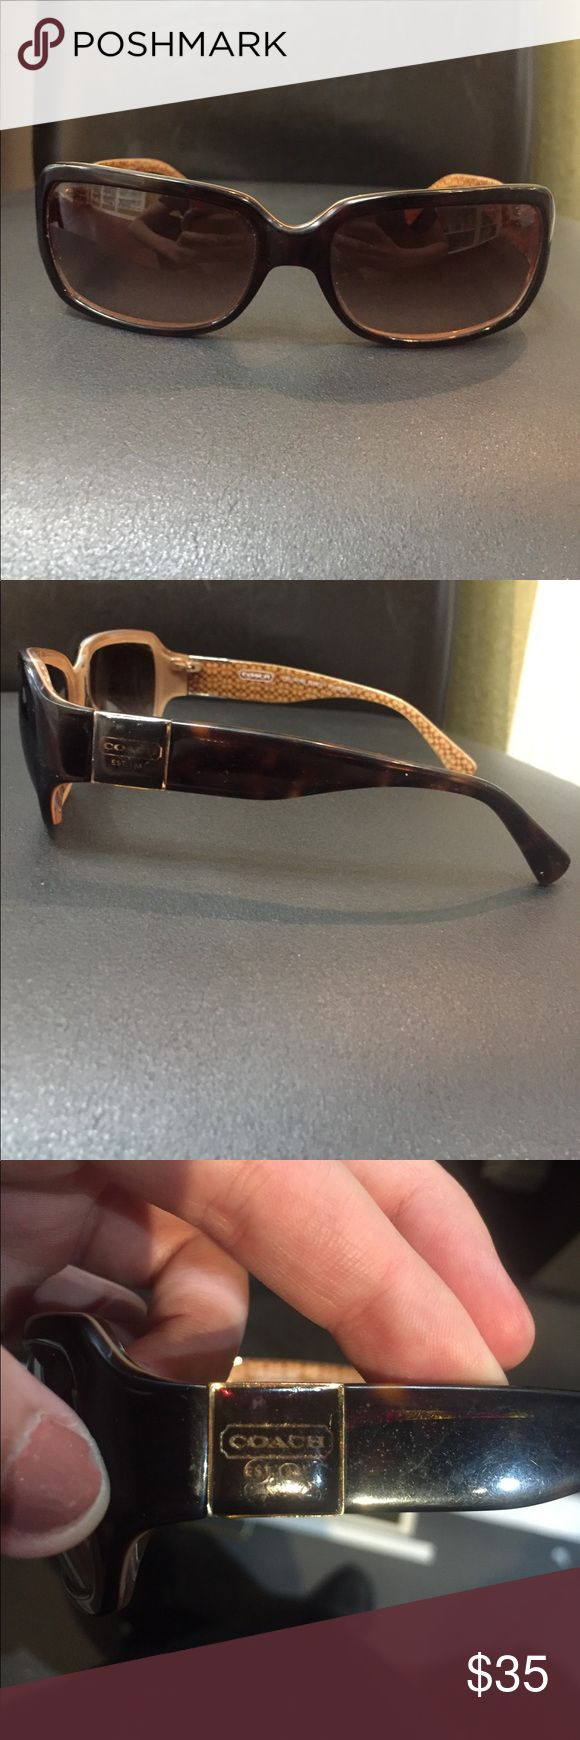 Vintage Coach sunglasses Vintage Coach sunglasses with verification code! Coach Accessories Glasses